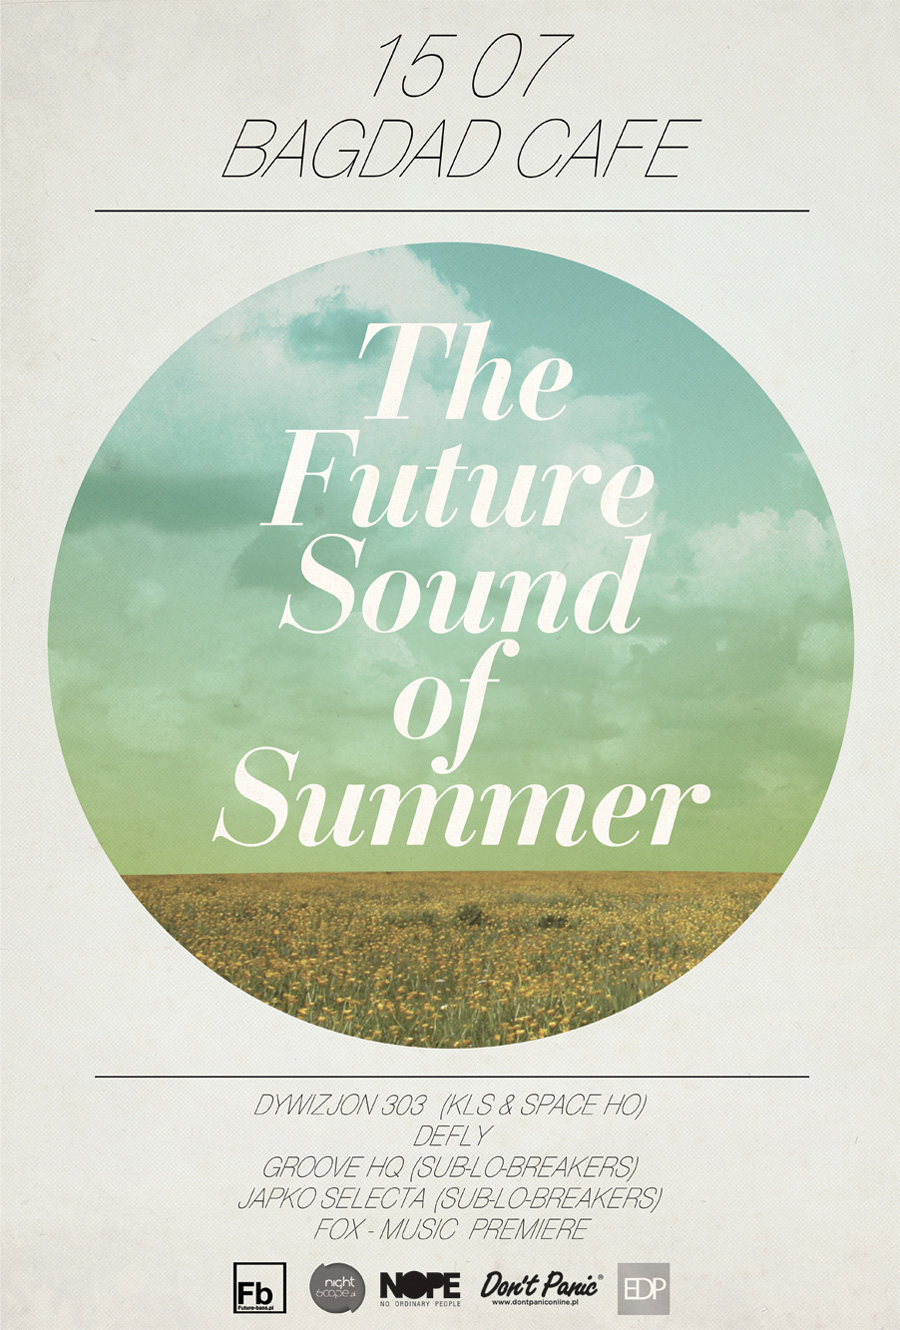 The Future Sound of Summer